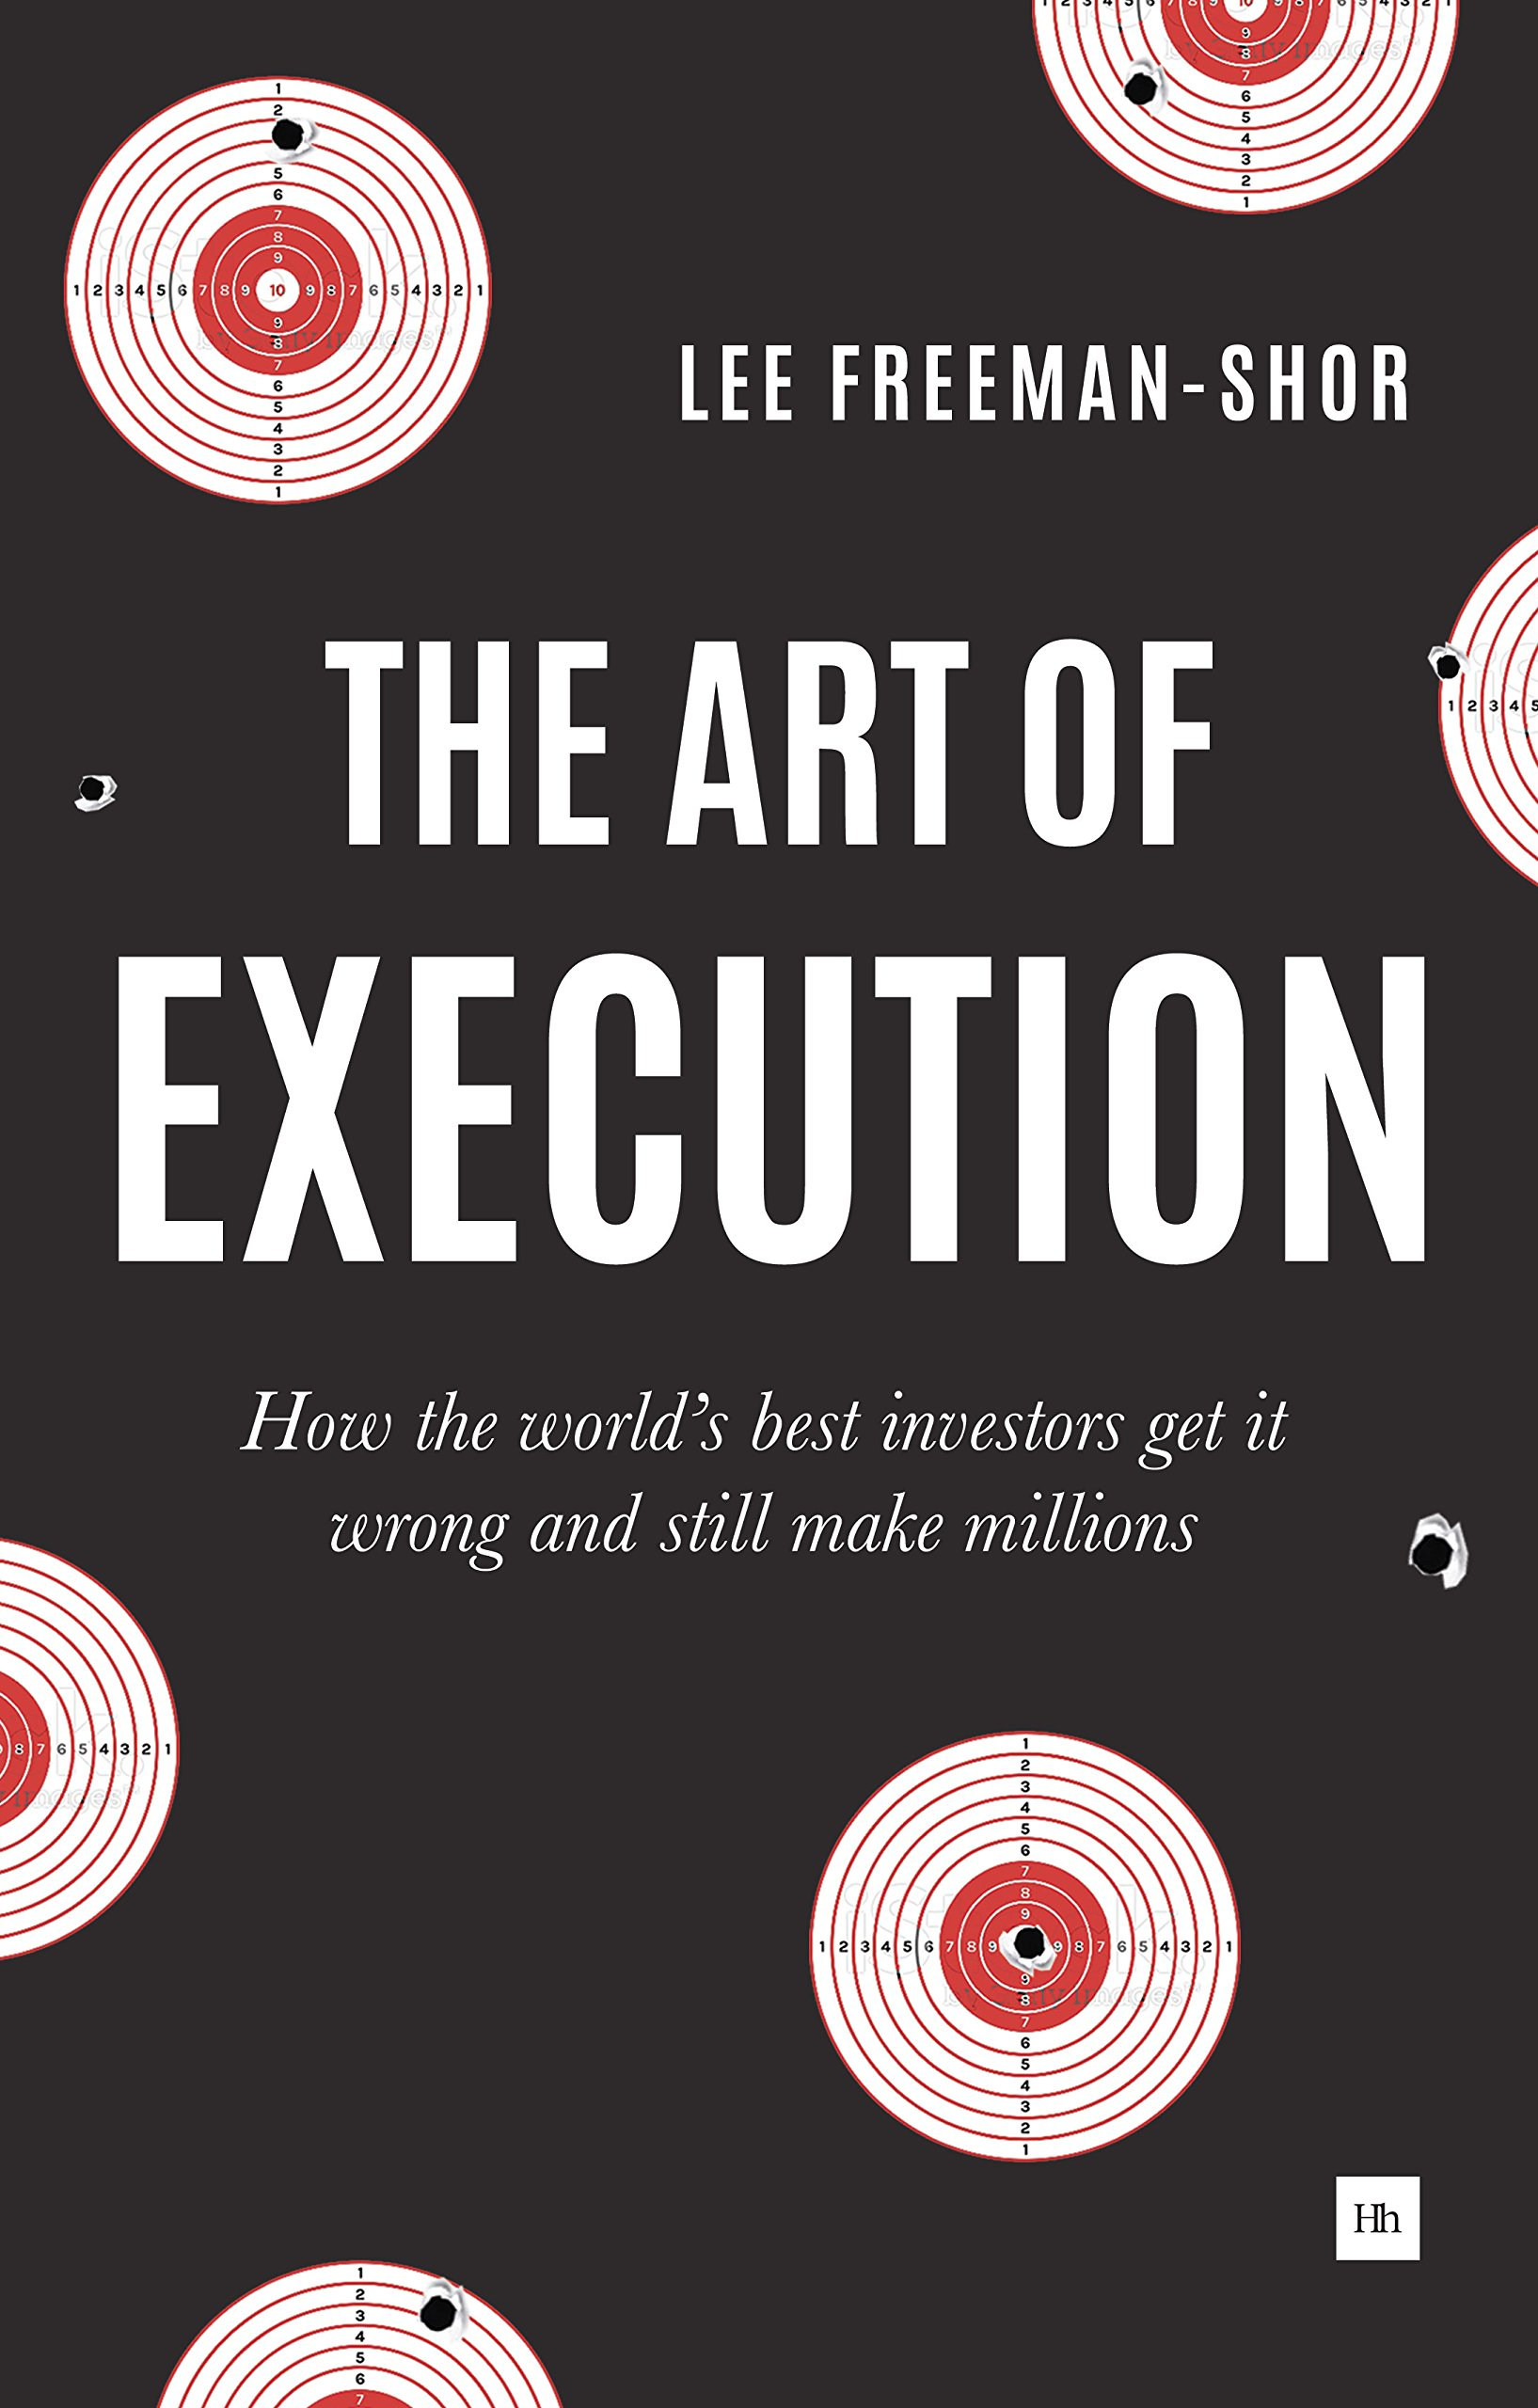 The Art Of Execution How Worlds Best Investors Get It Wrong Short Circuit Open Connection Test Leads Included Pricefallscom And Still Make Millions In Markets Lee Freeman Shor 9780857194954